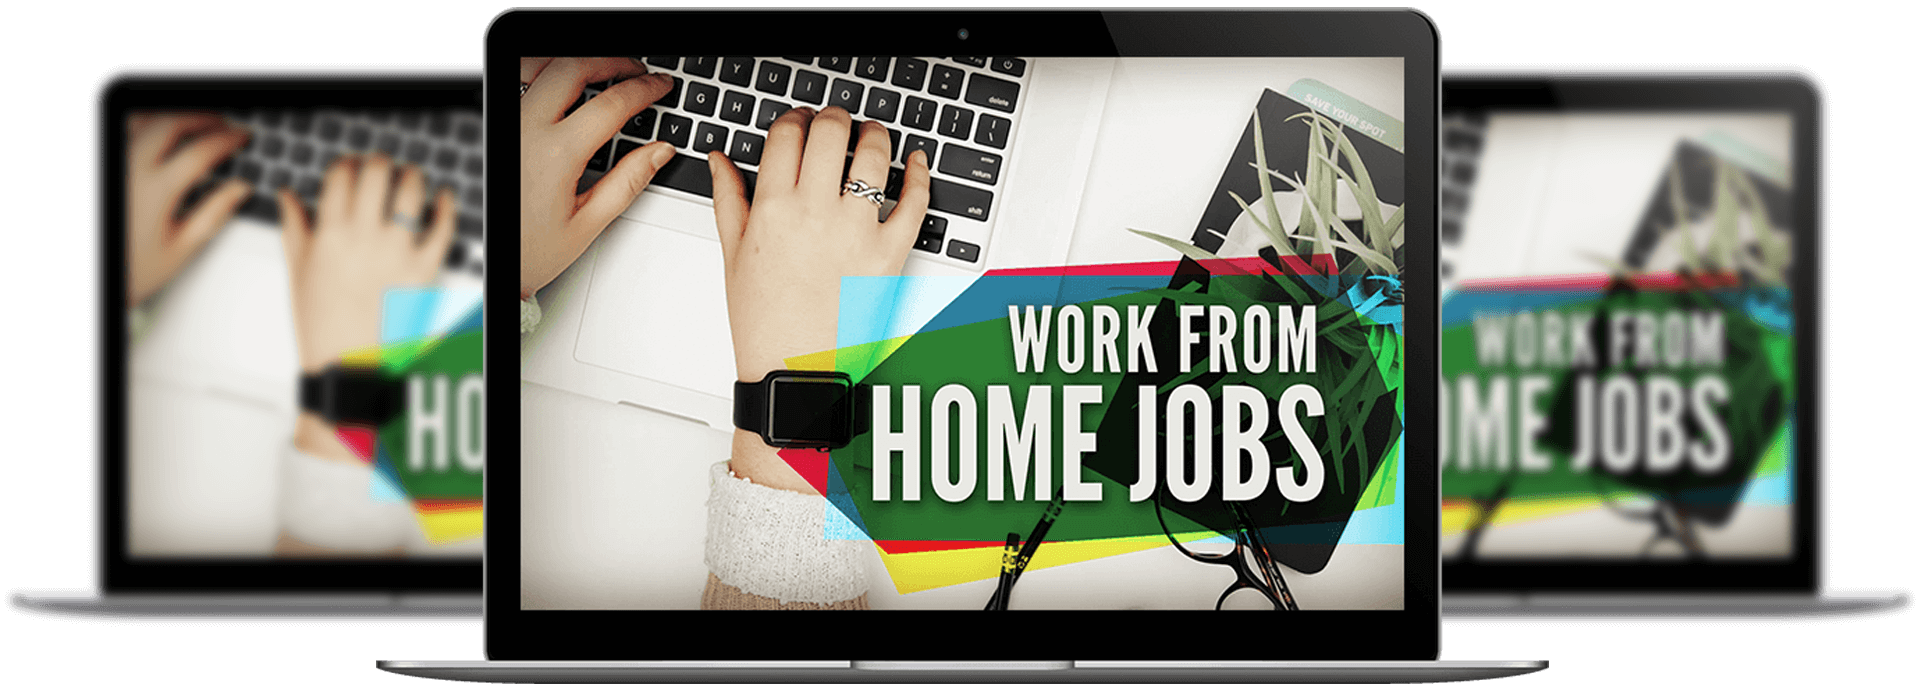 Work From Home Jobs 1